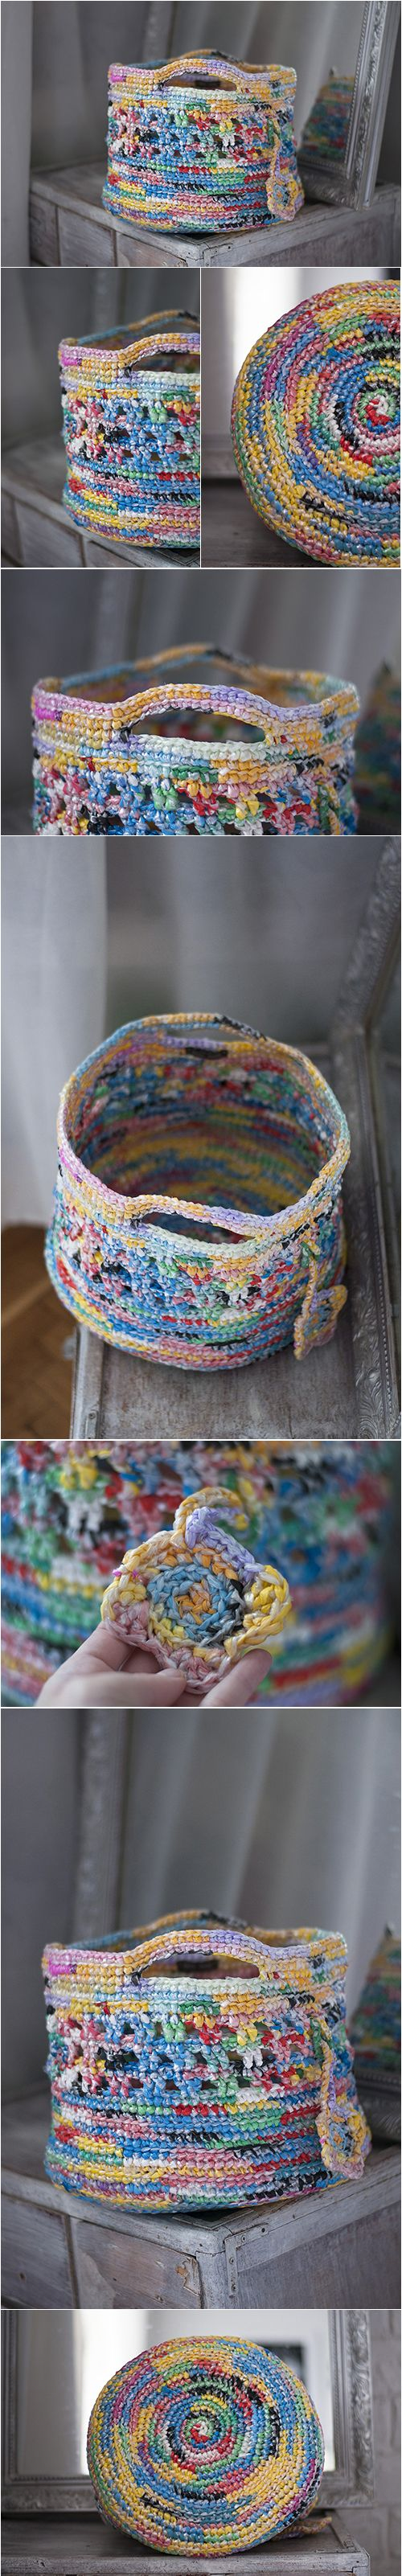 Midle Rainbow Upcycled Plarn Basket, Recycled Toy Storage, Ecofriendly Pouch, Crochet Multicolor Yellow Red Blue Green Big Colored Basket, Upcycling, recycling